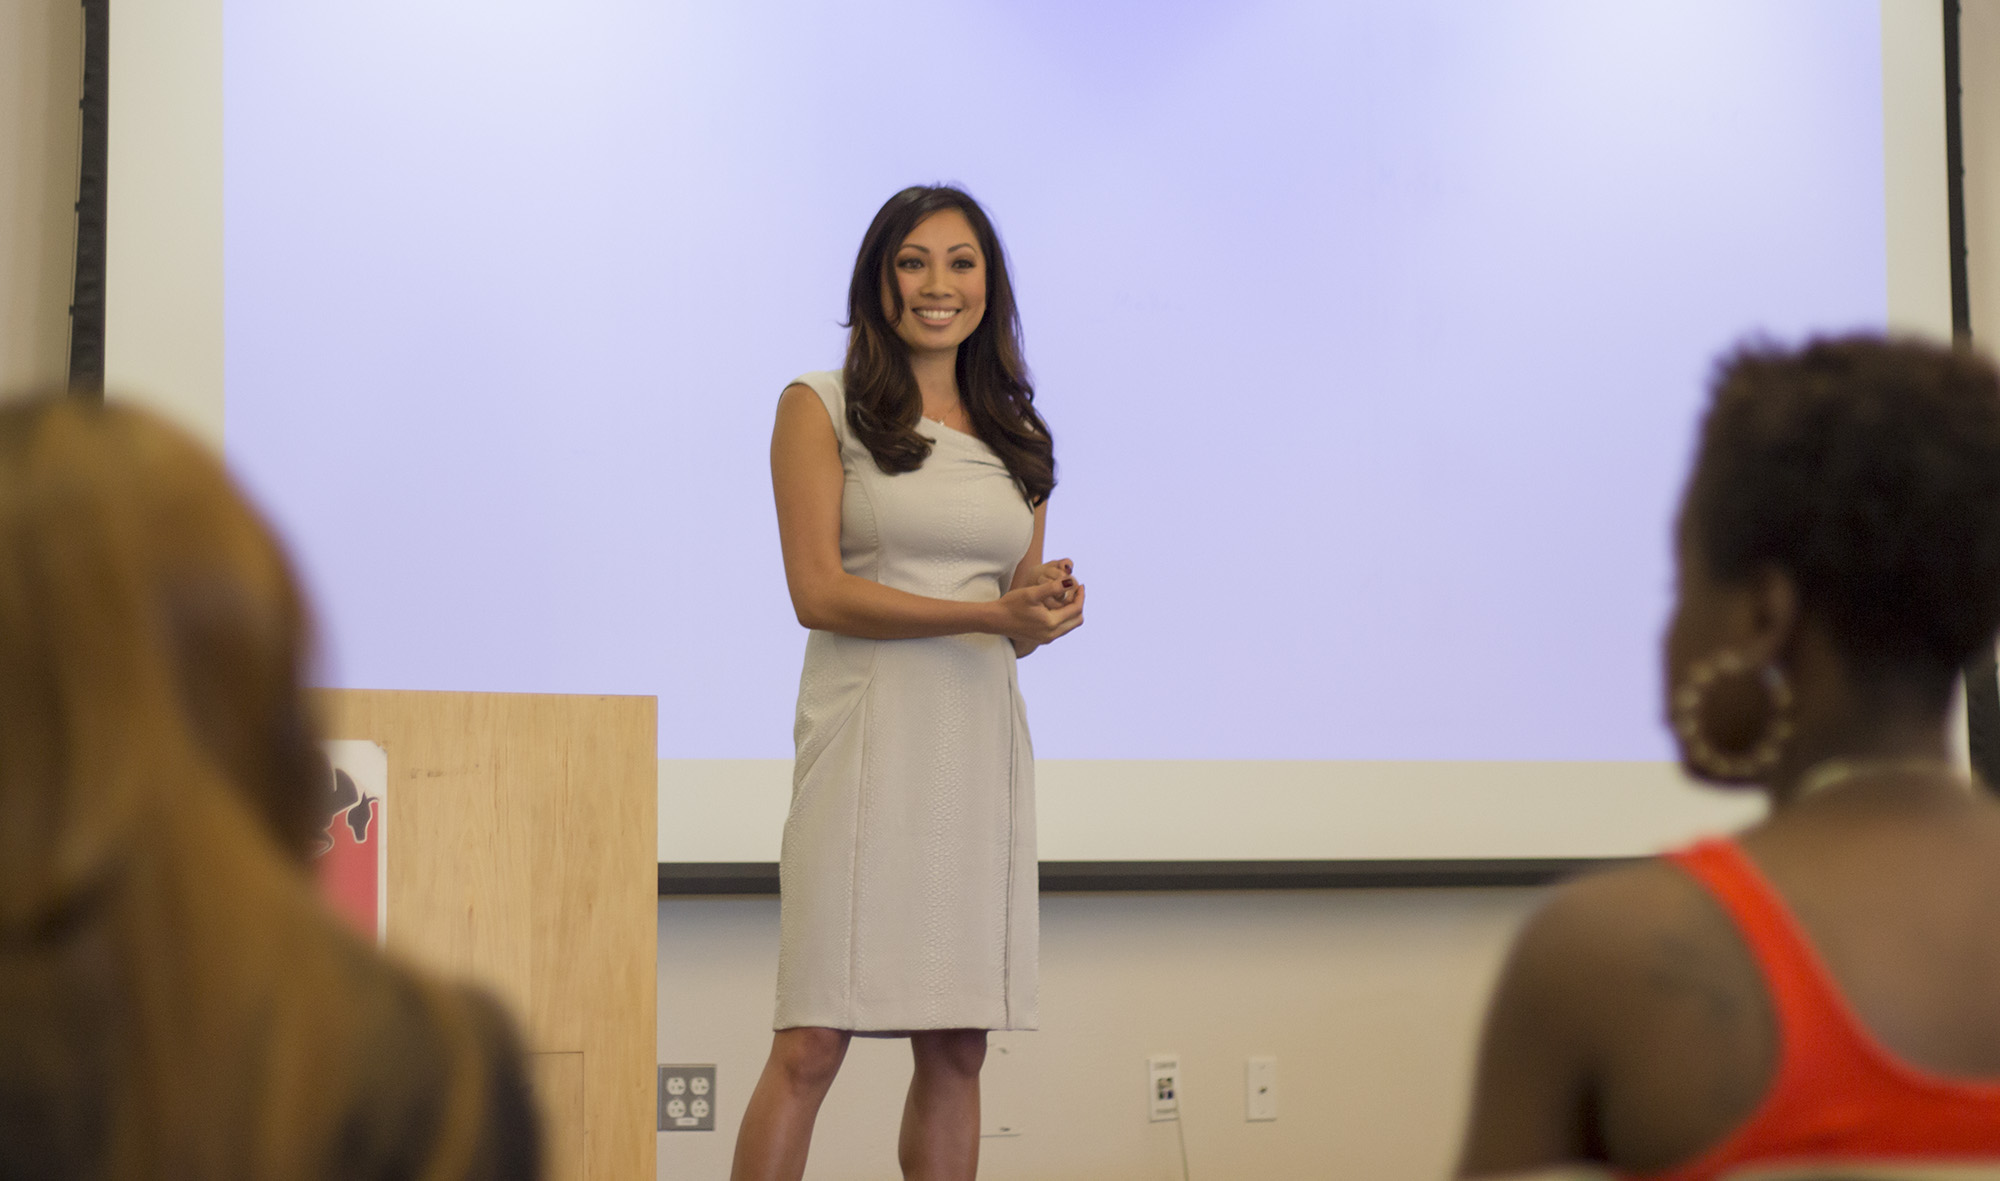 KTLA reporter Kimberly Cheng shares networking knowledge with Pierce students